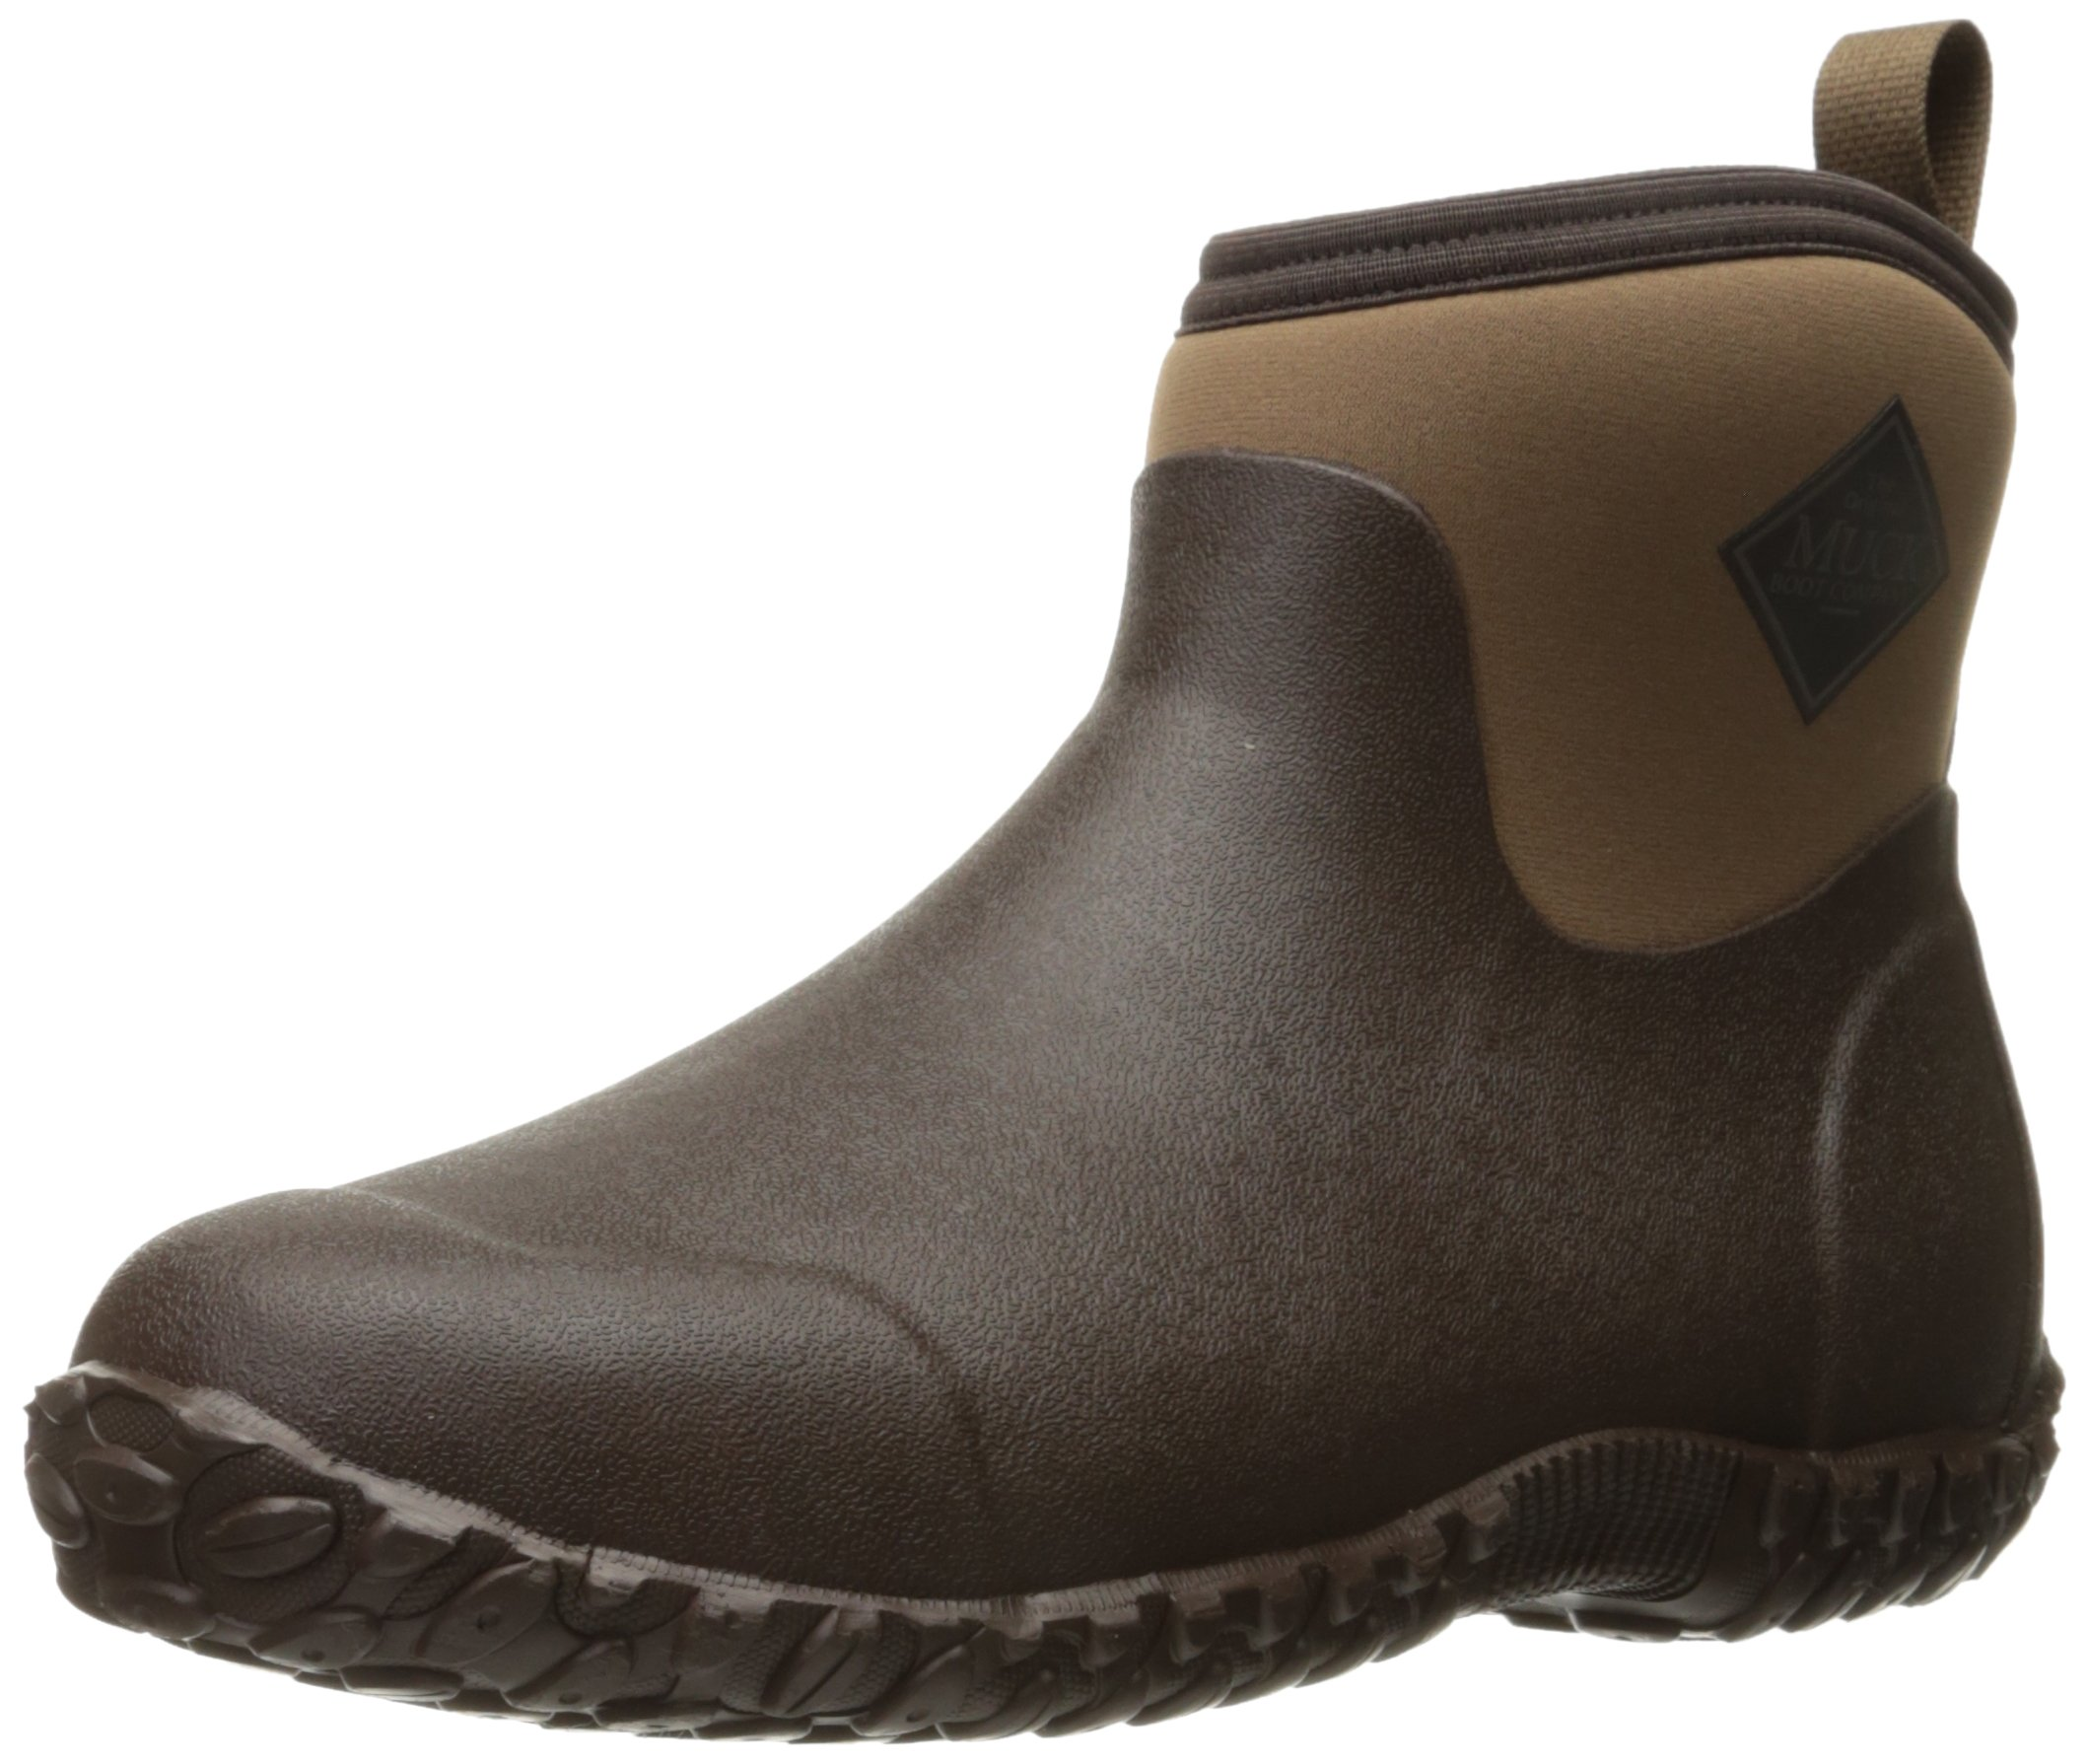 Muck Boot Men's Muckster II Ankle Work Shoe, Black/Otter, 11 US/11-11.5 M US